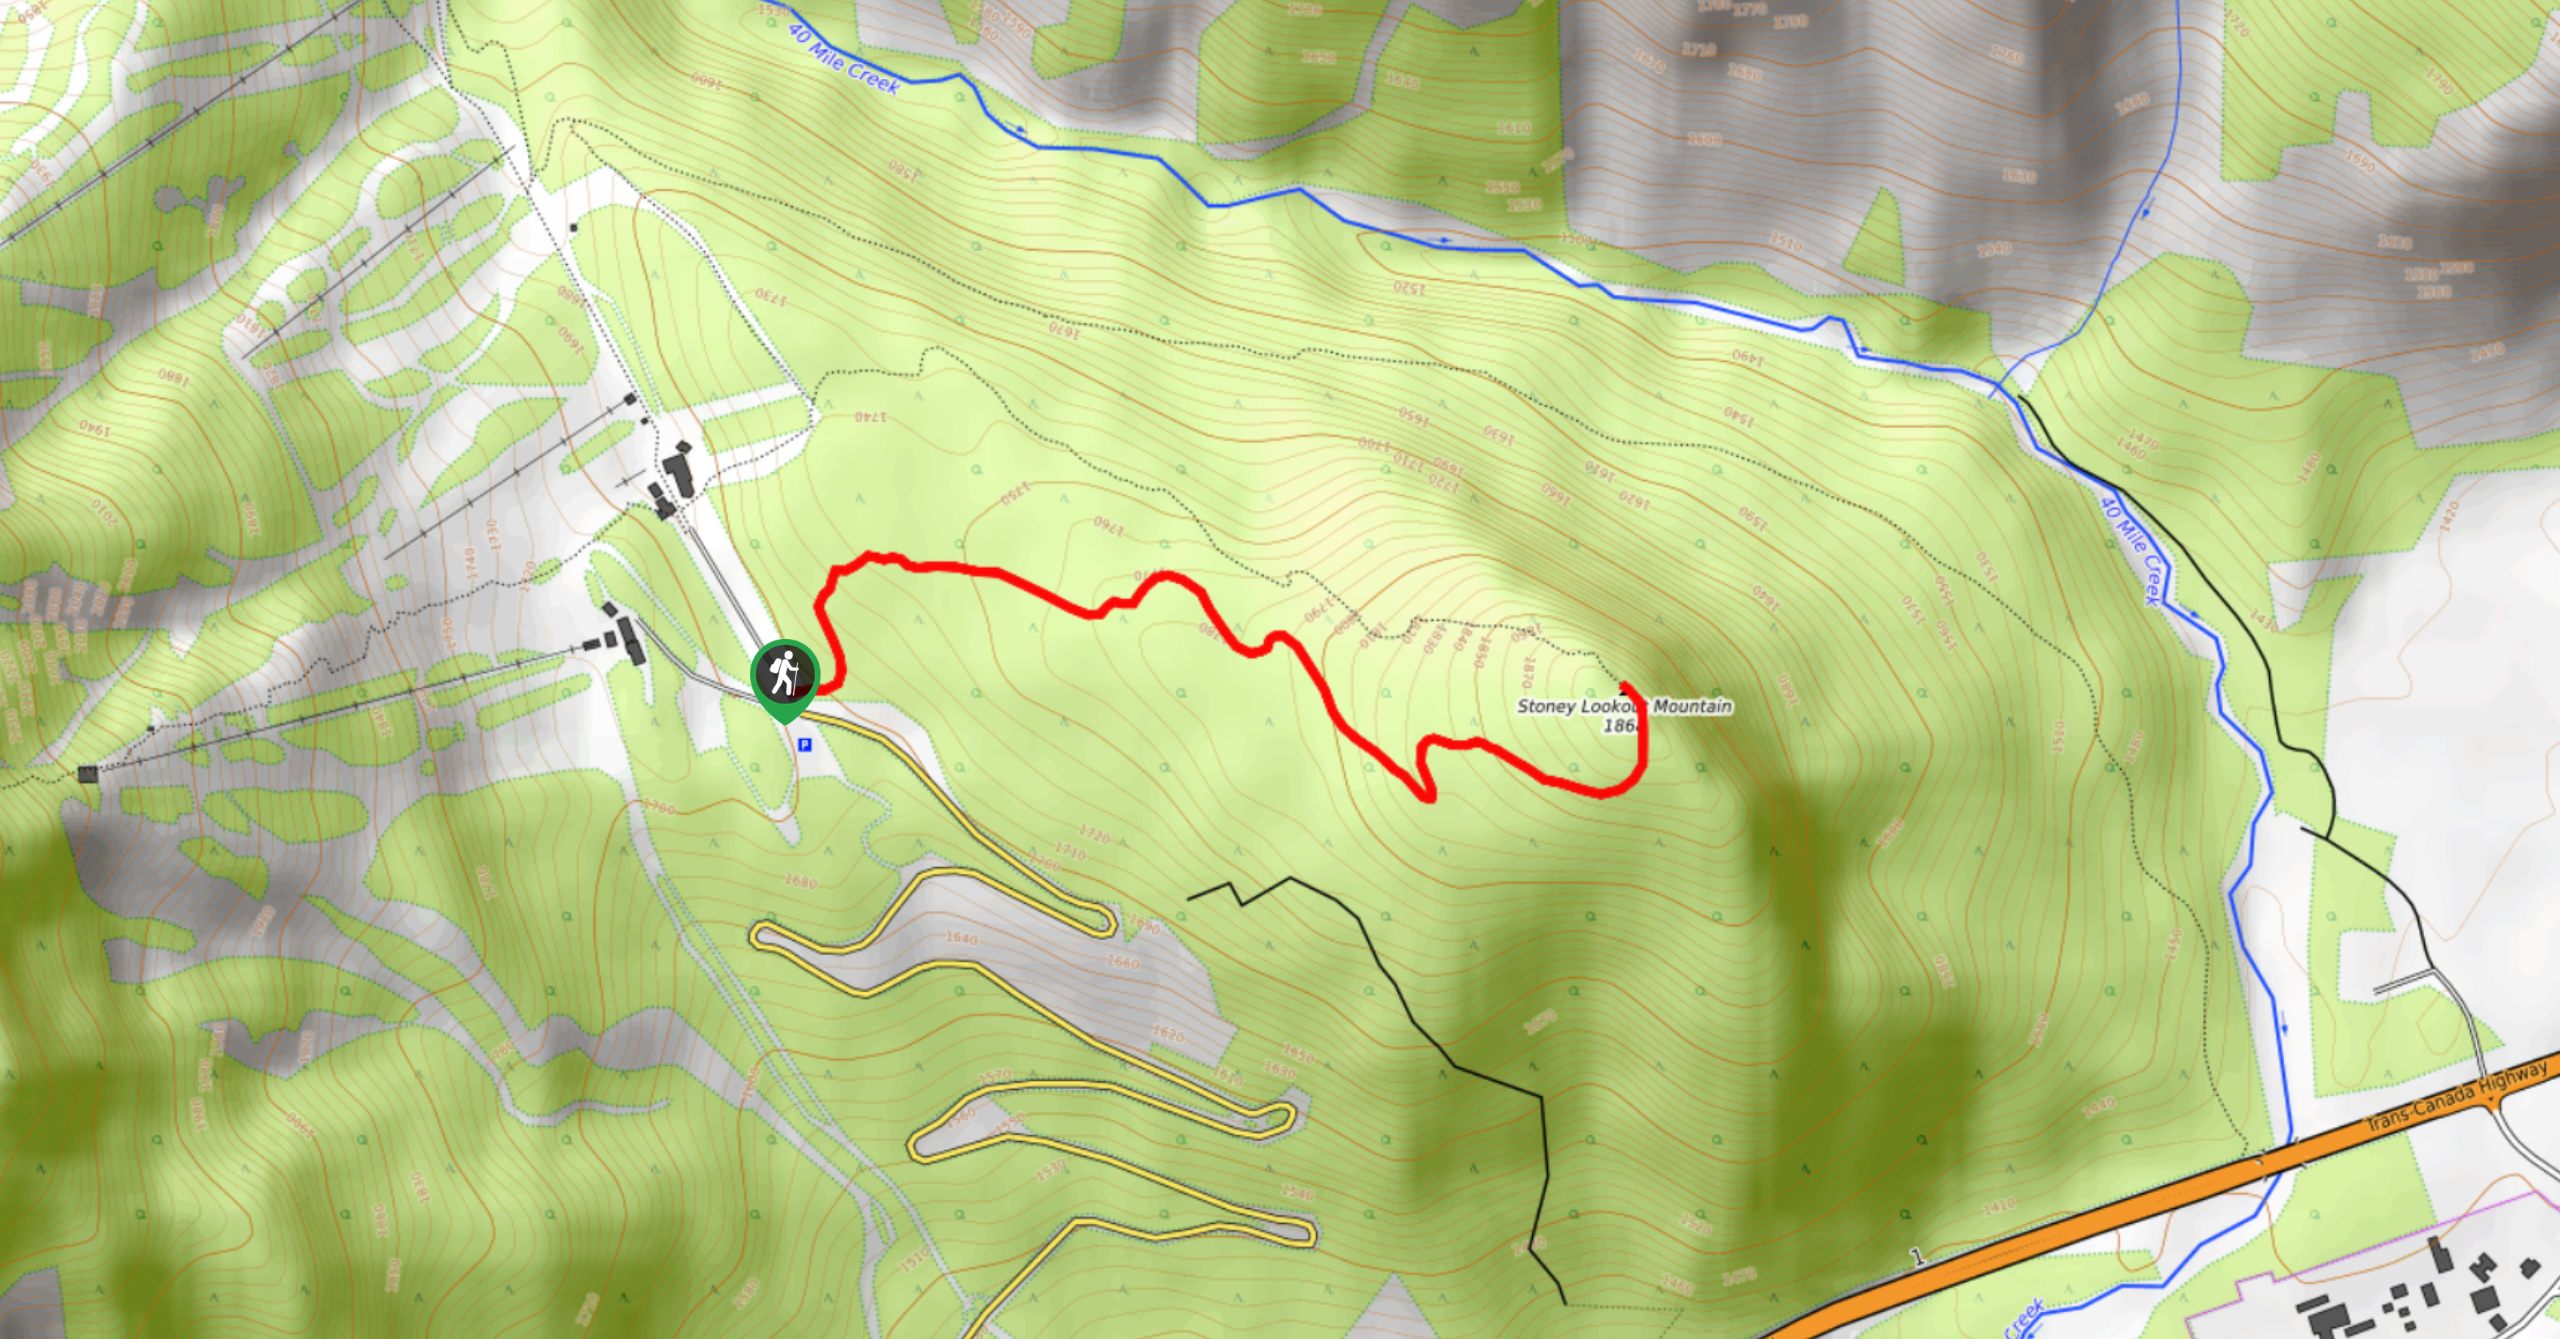 Stoney-Lookout-Trail-Map